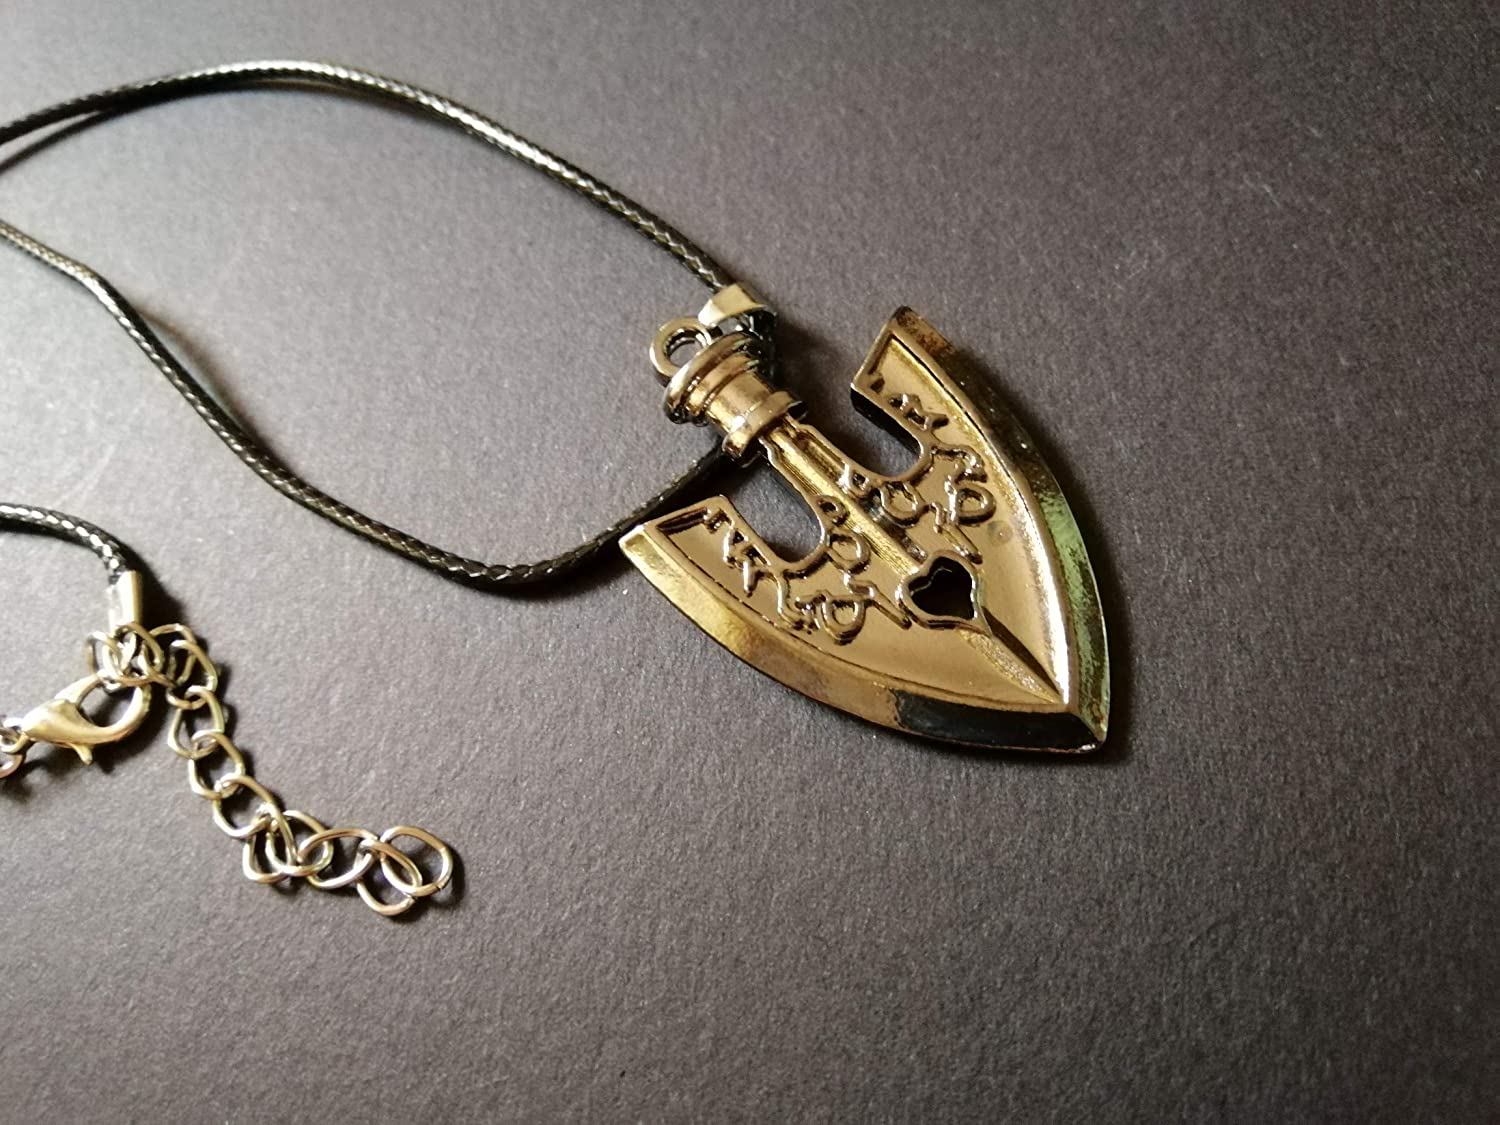 Jojo Stand Arrow Necklace – All stand stats shown in the anime.